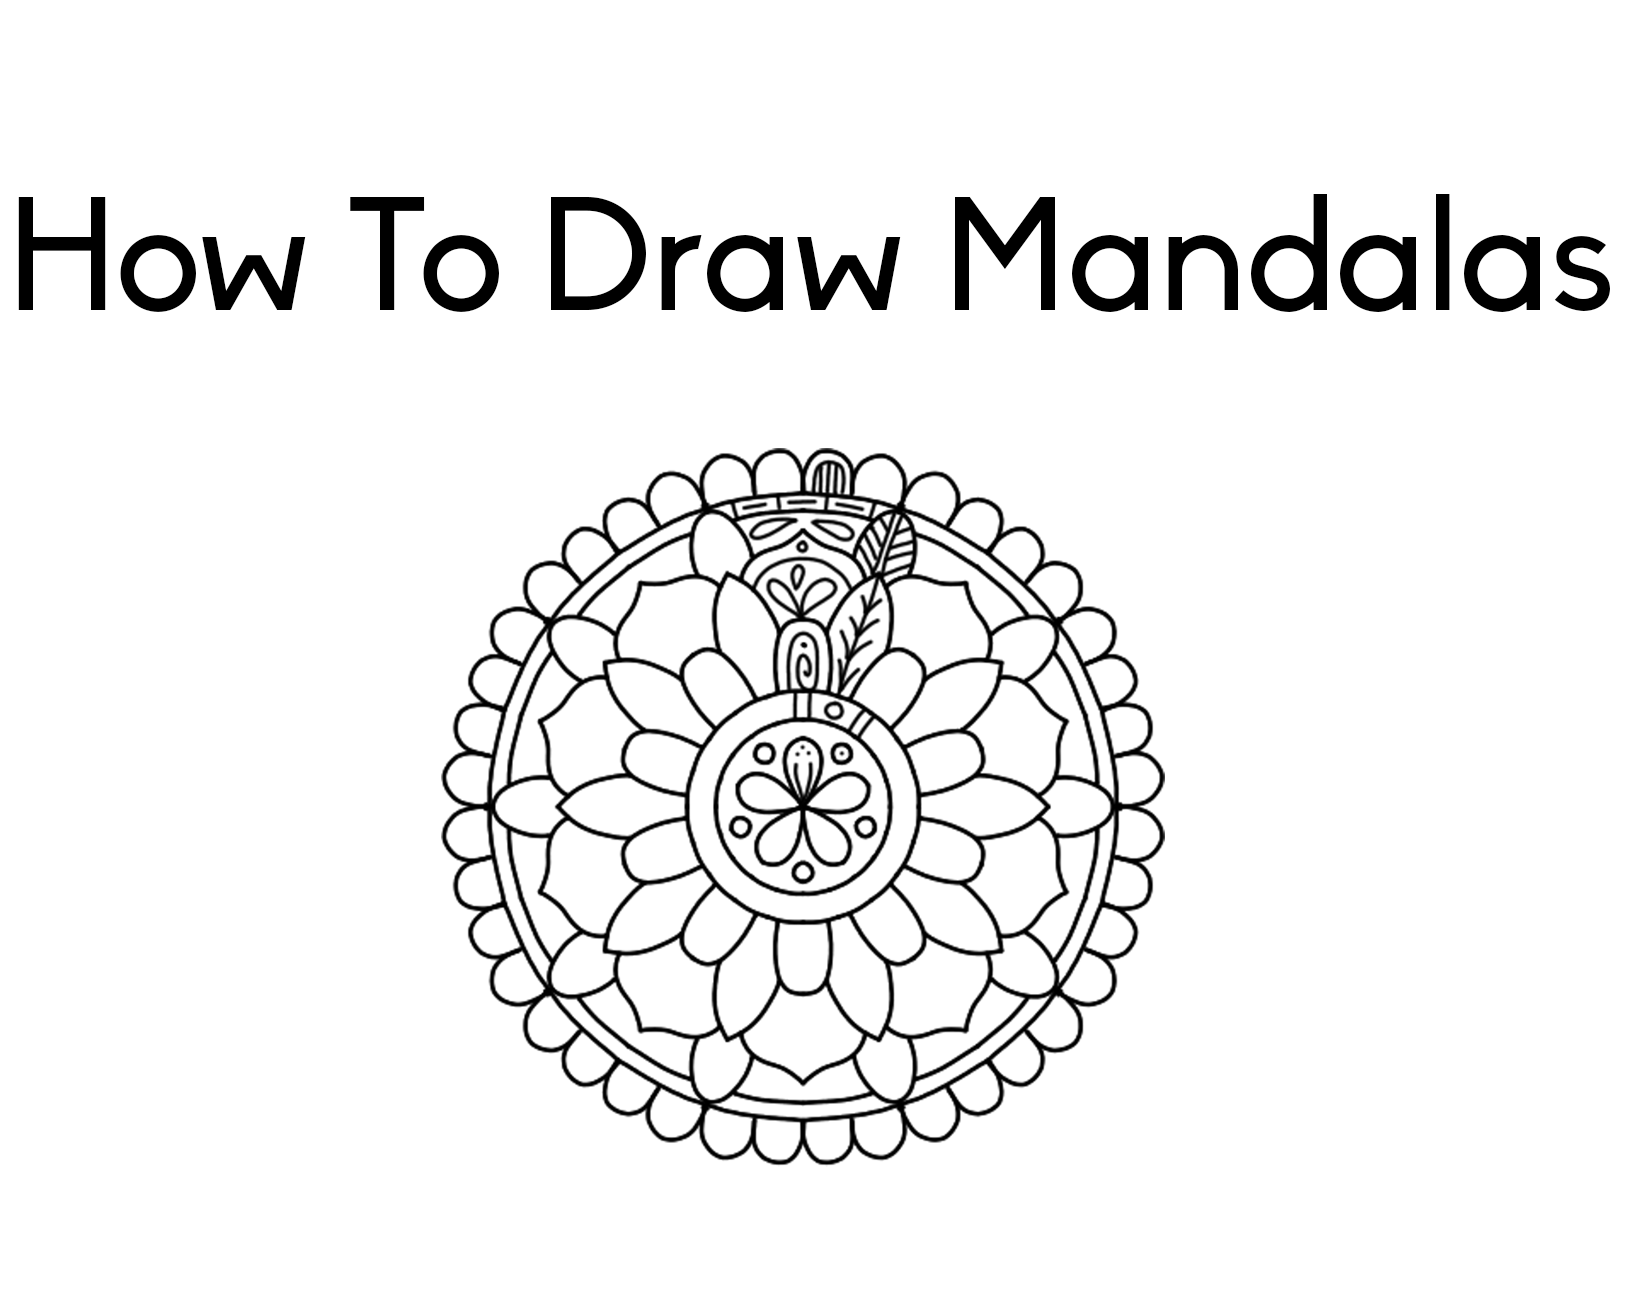 1636x1298 How To Draw Mandalas By Screwy Lightbulb